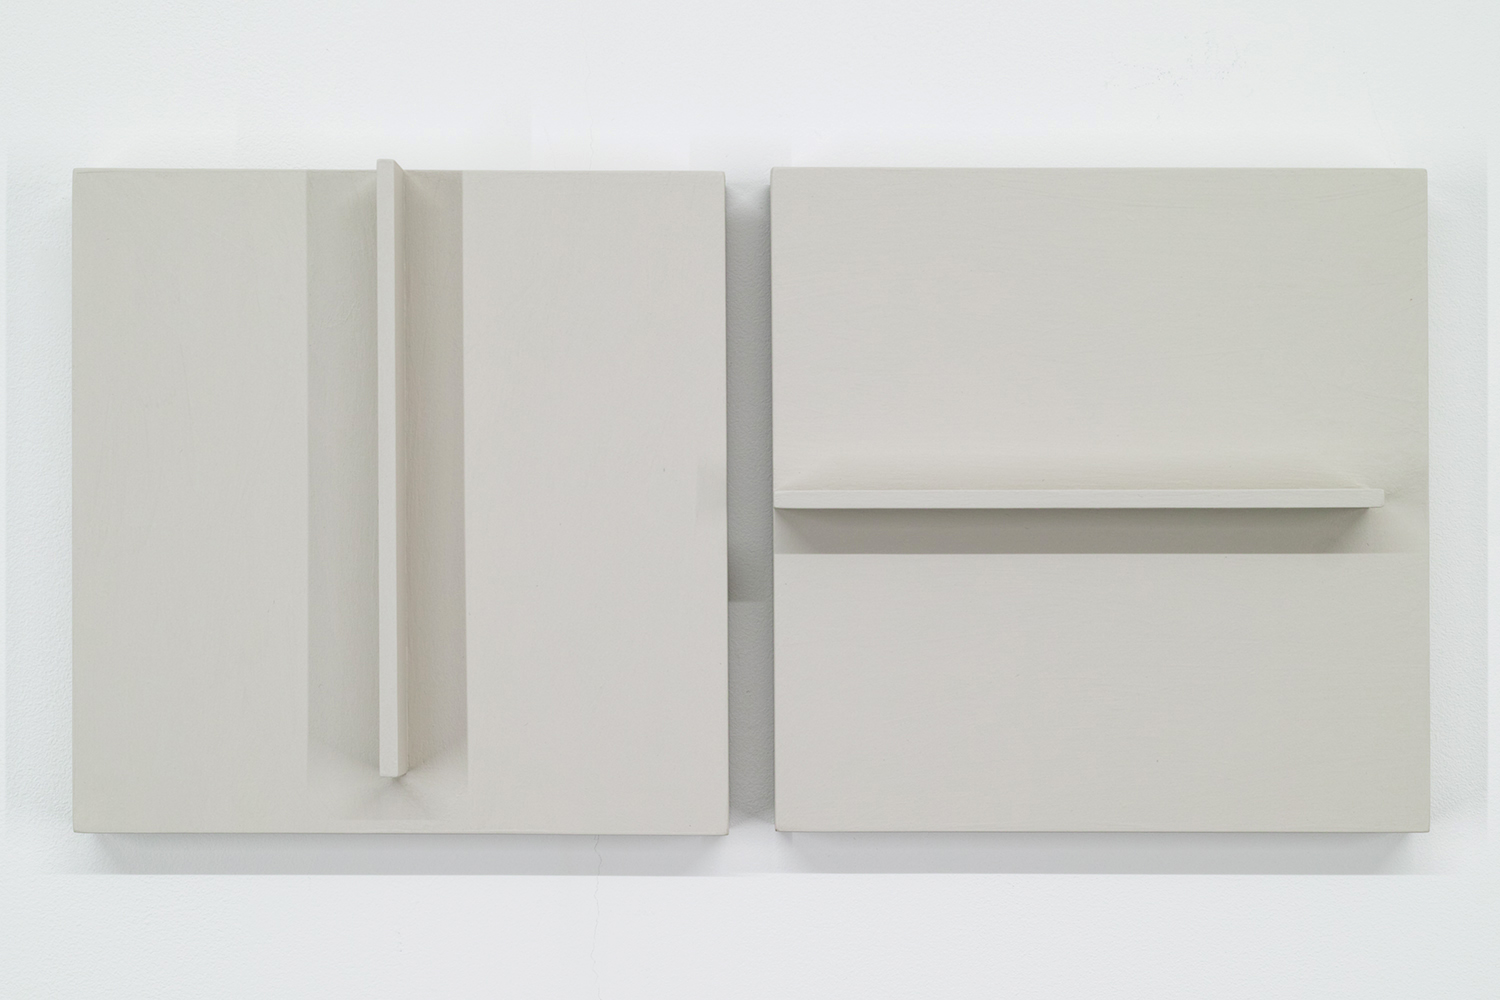 TS1713 A/B<br>Colour Gesso on Panel, 20 x 20 cm each (set of 2), 2017